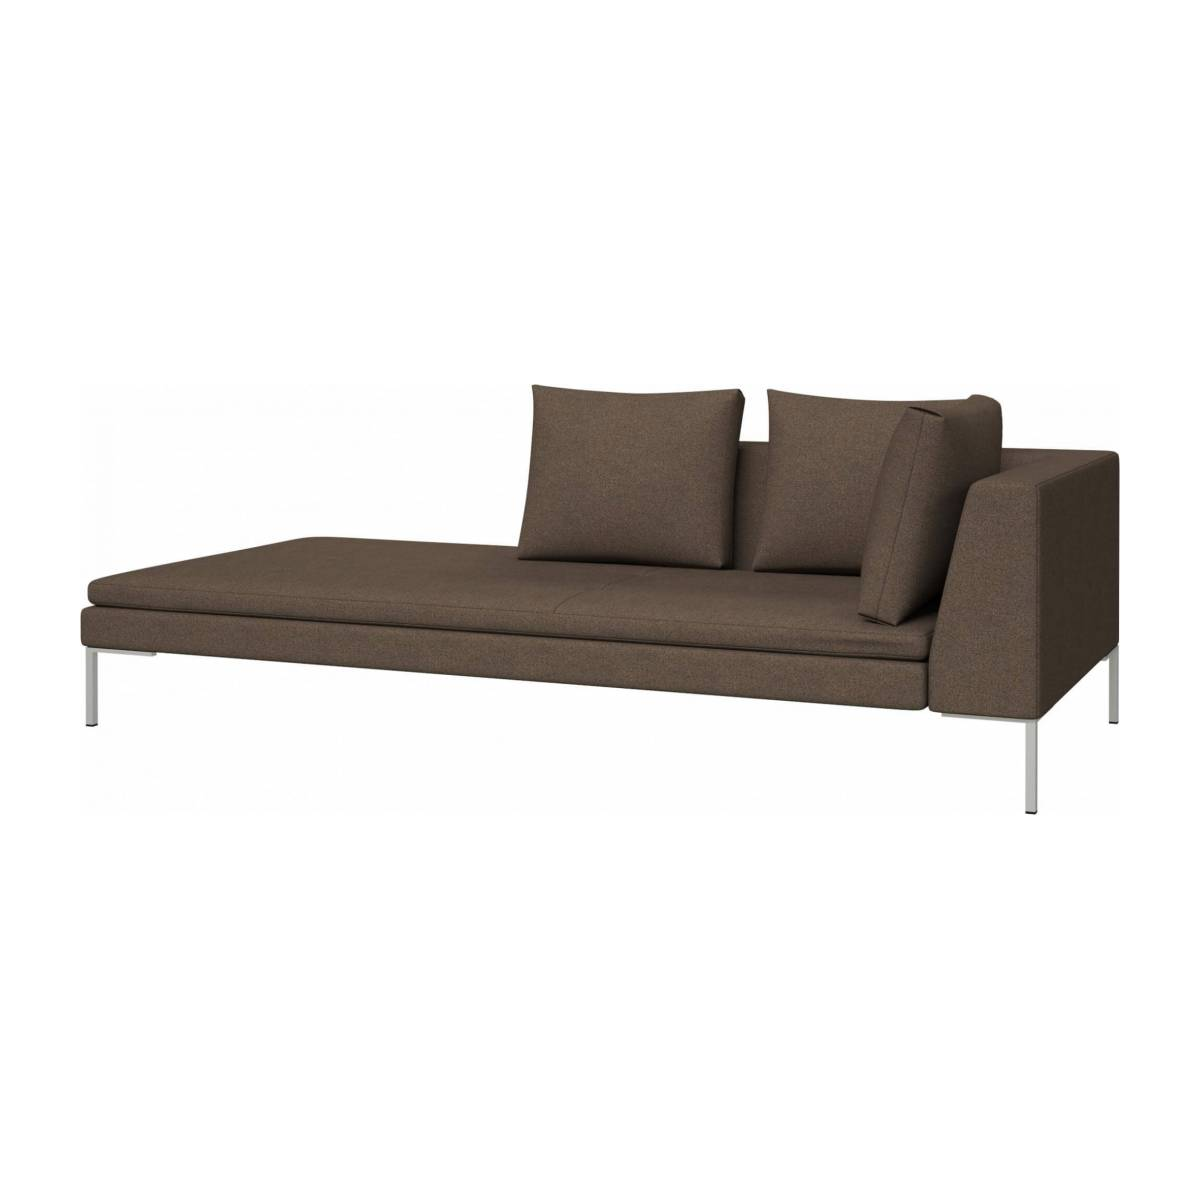 Chaiselongue, links aus Lecce-Stoff - Orange n°2